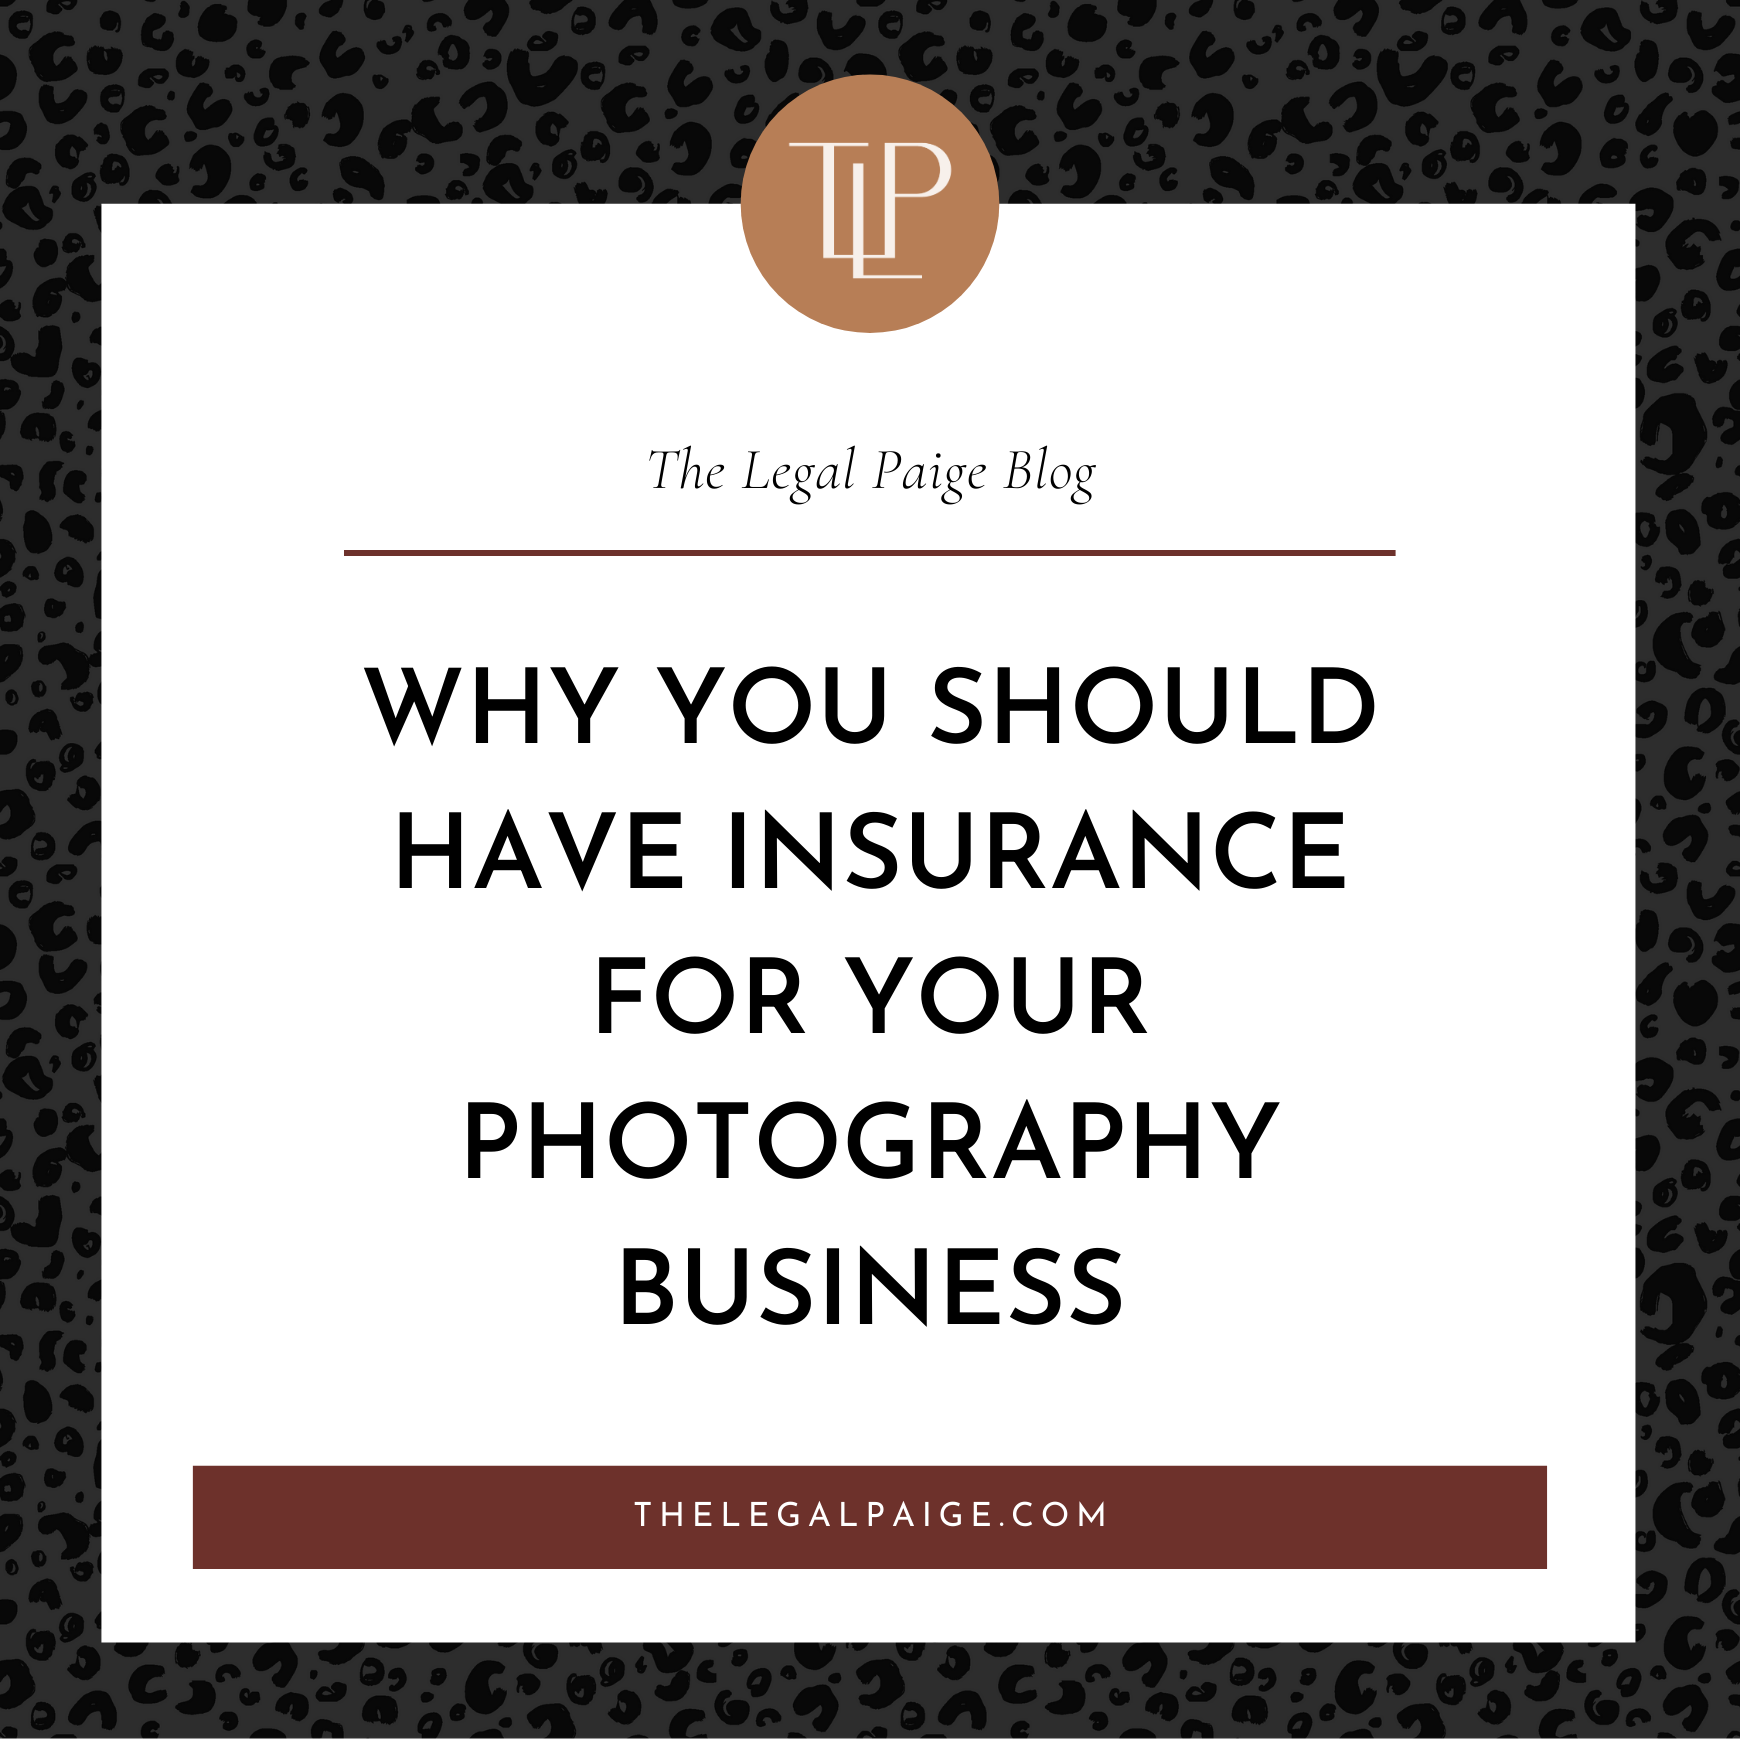 Why You Should Have Insurance for Your Photography Business